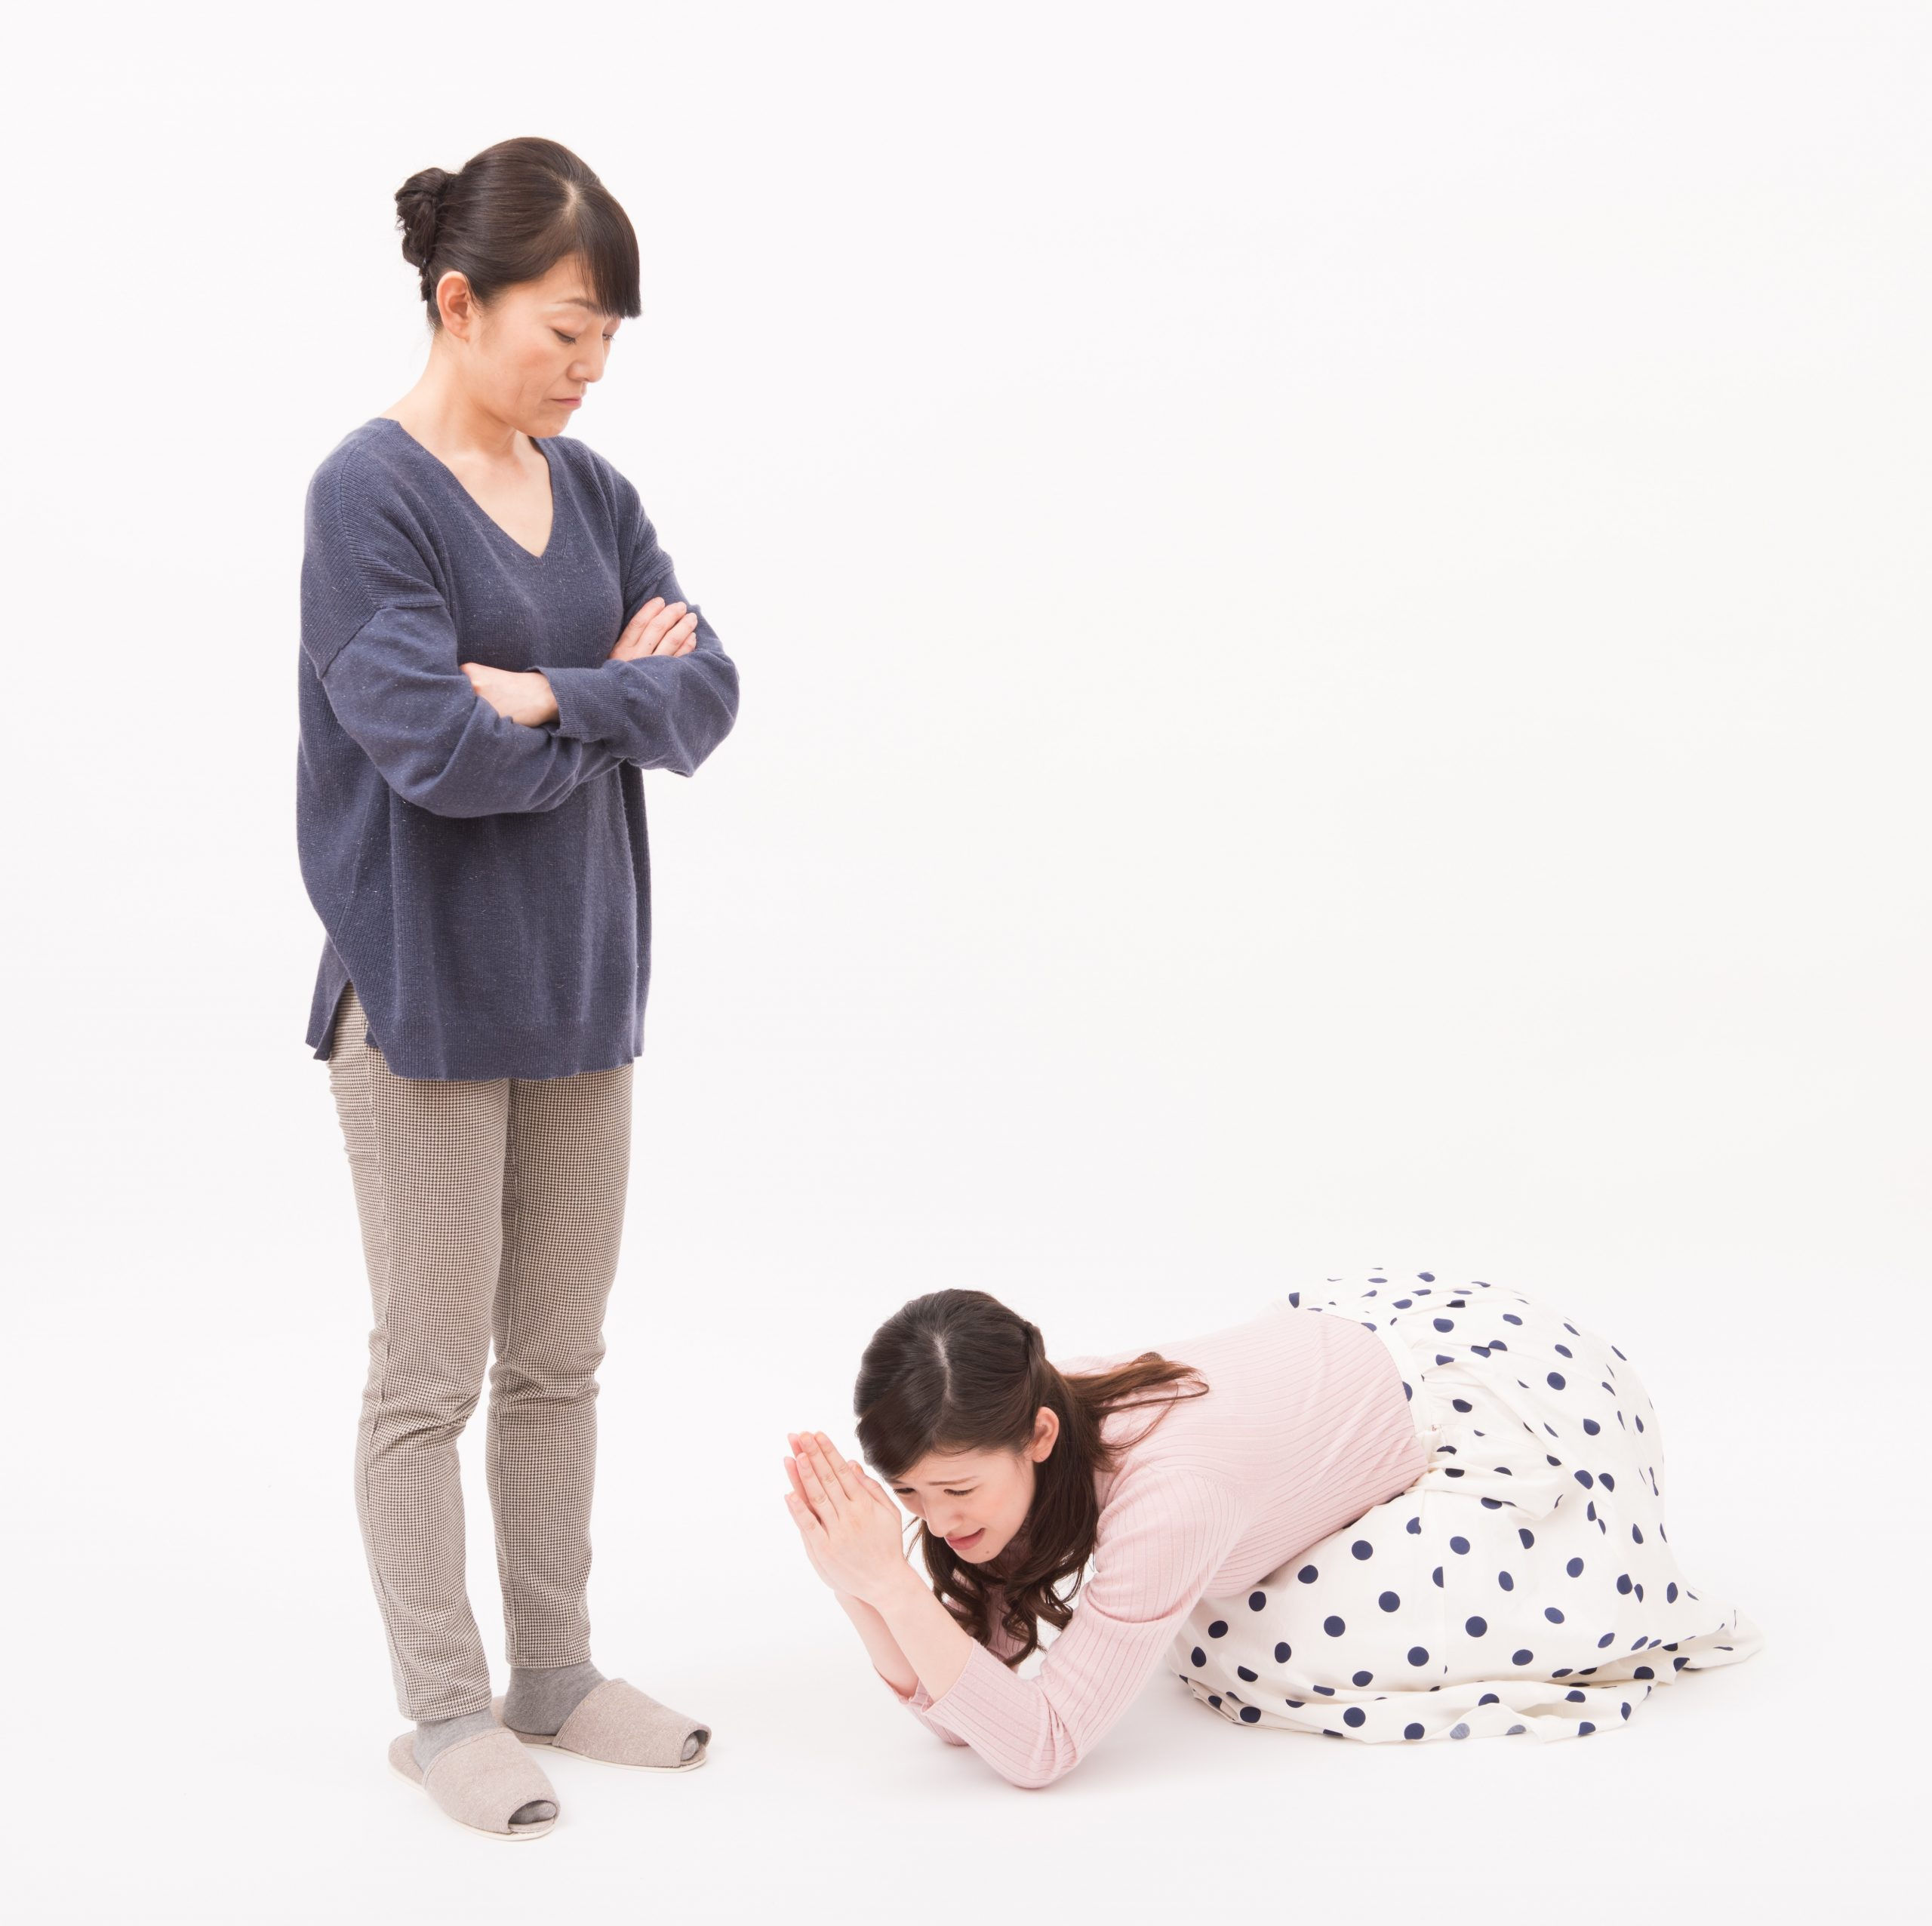 Japanese woman kneeling and apologizing to another woman